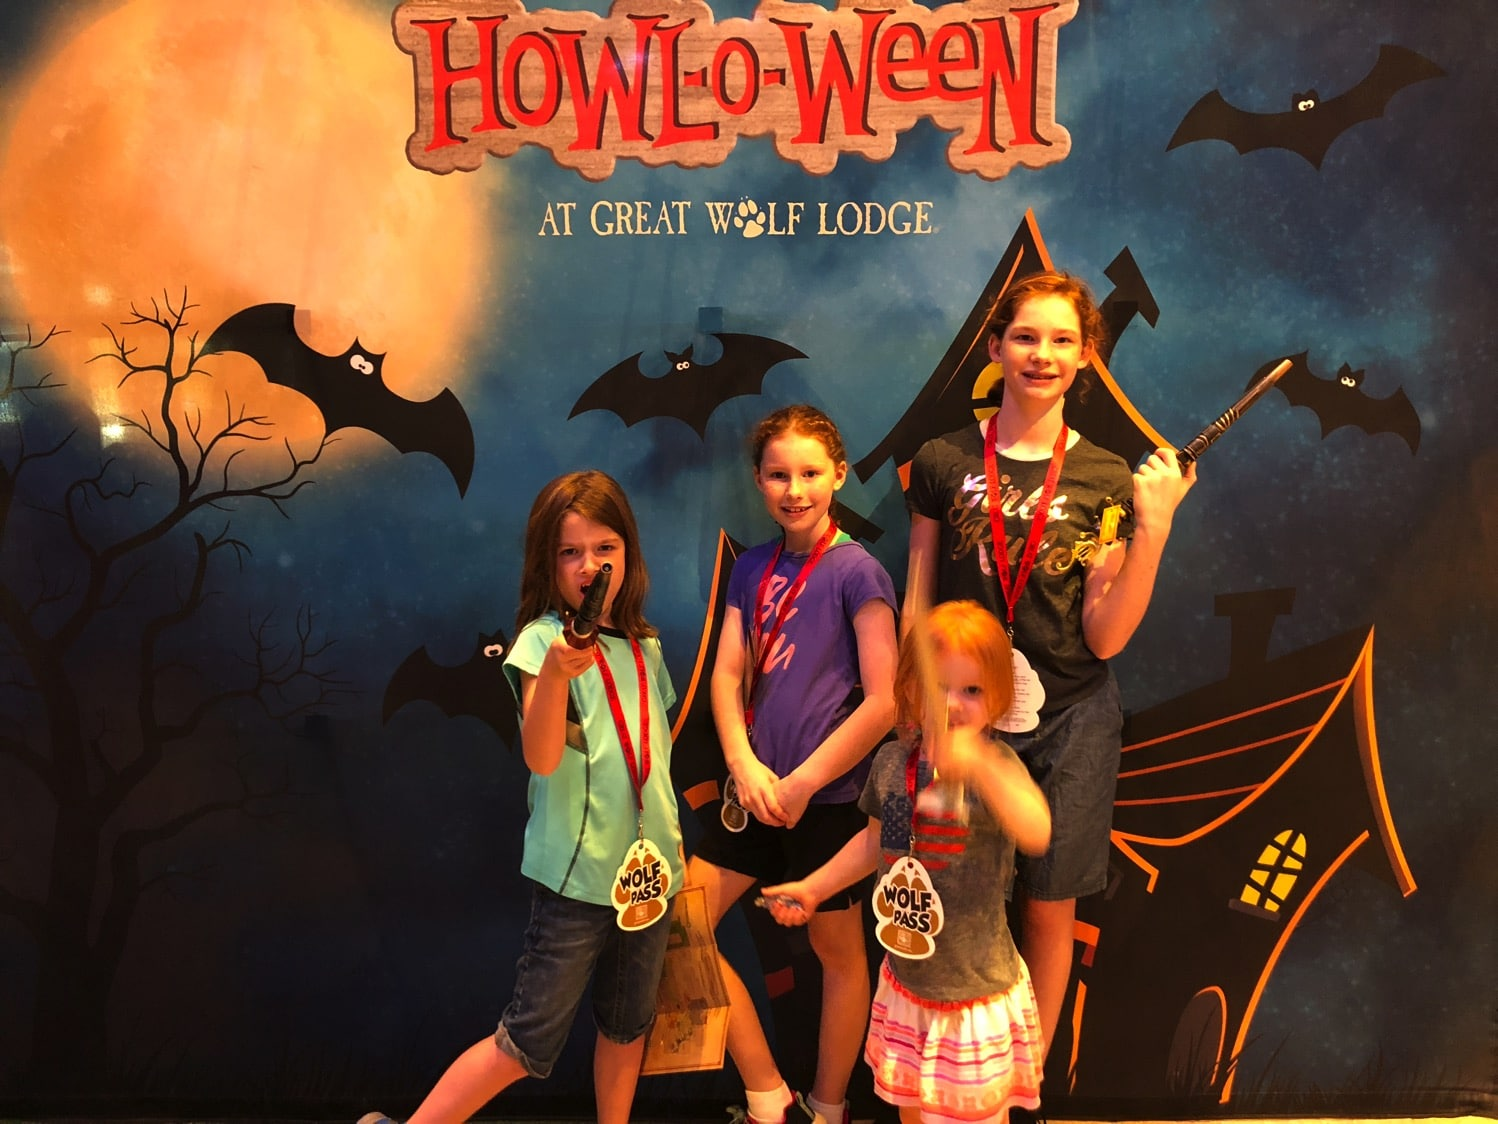 Great Wolf Lodge Georgia Howloween.jpg